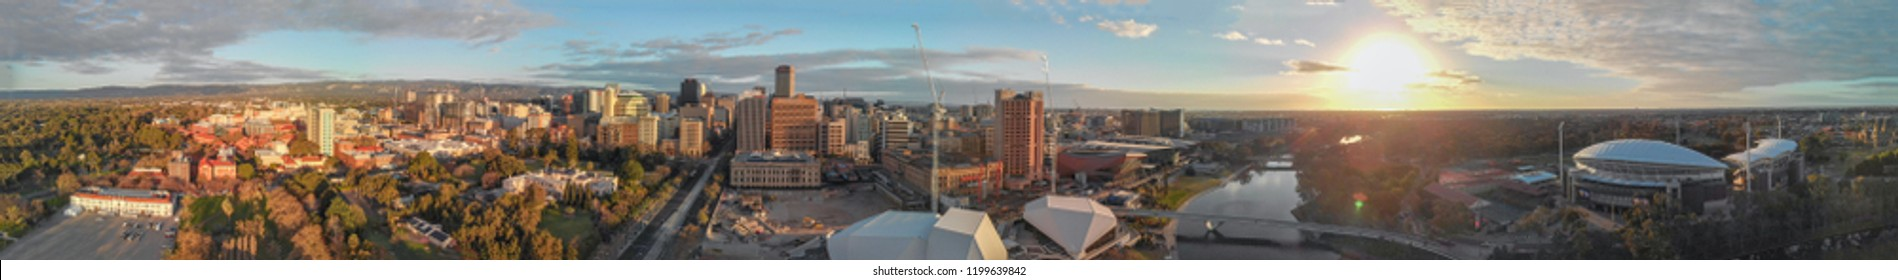 Stunning aerial panoramic view of Adelaide skyline at sunset, South Australia.